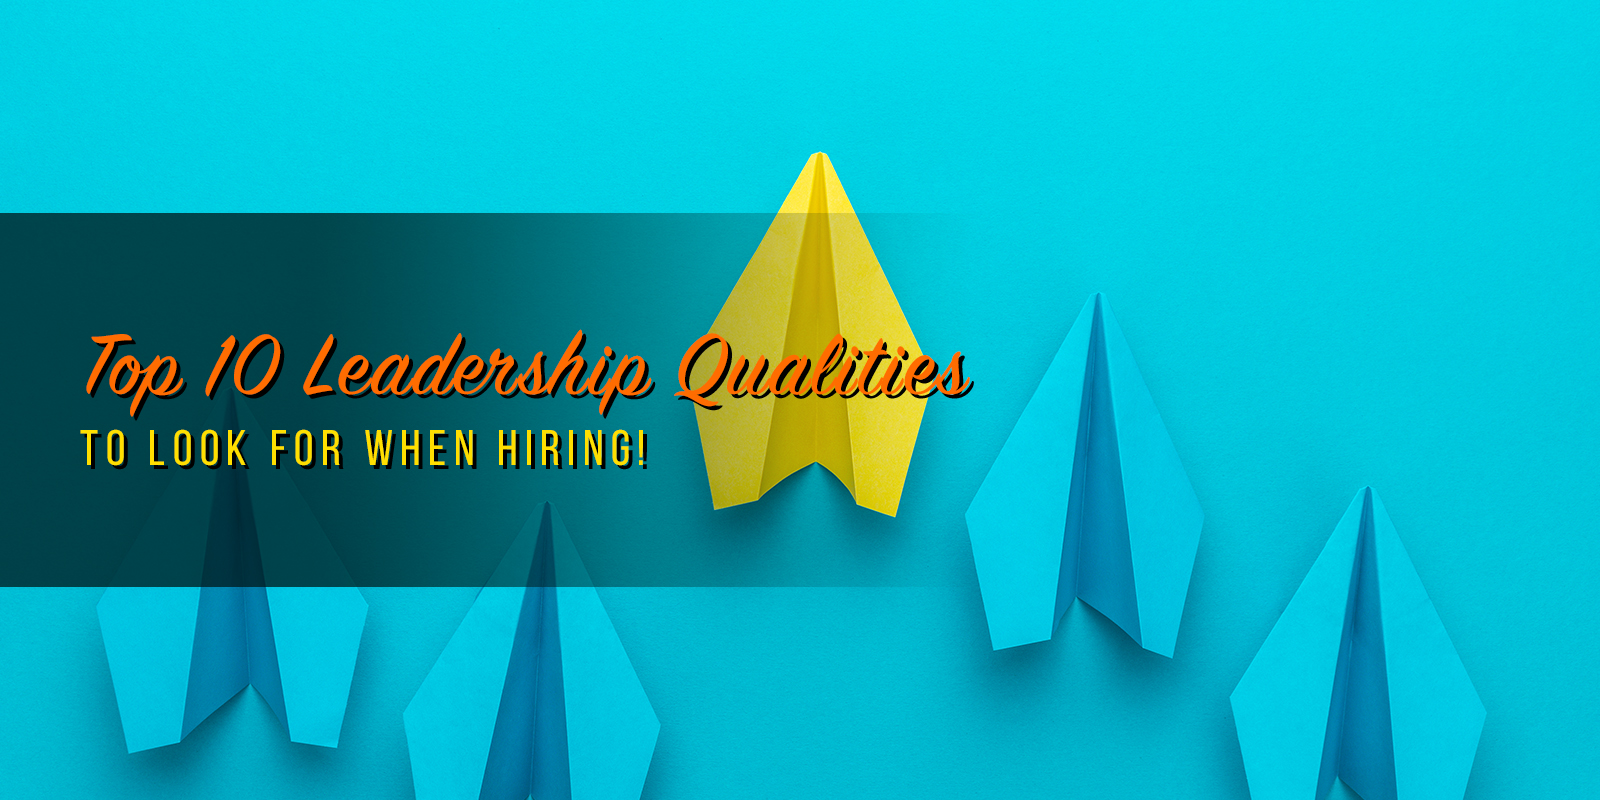 Top 10 Leadership Qualities To Look For When Hiring!